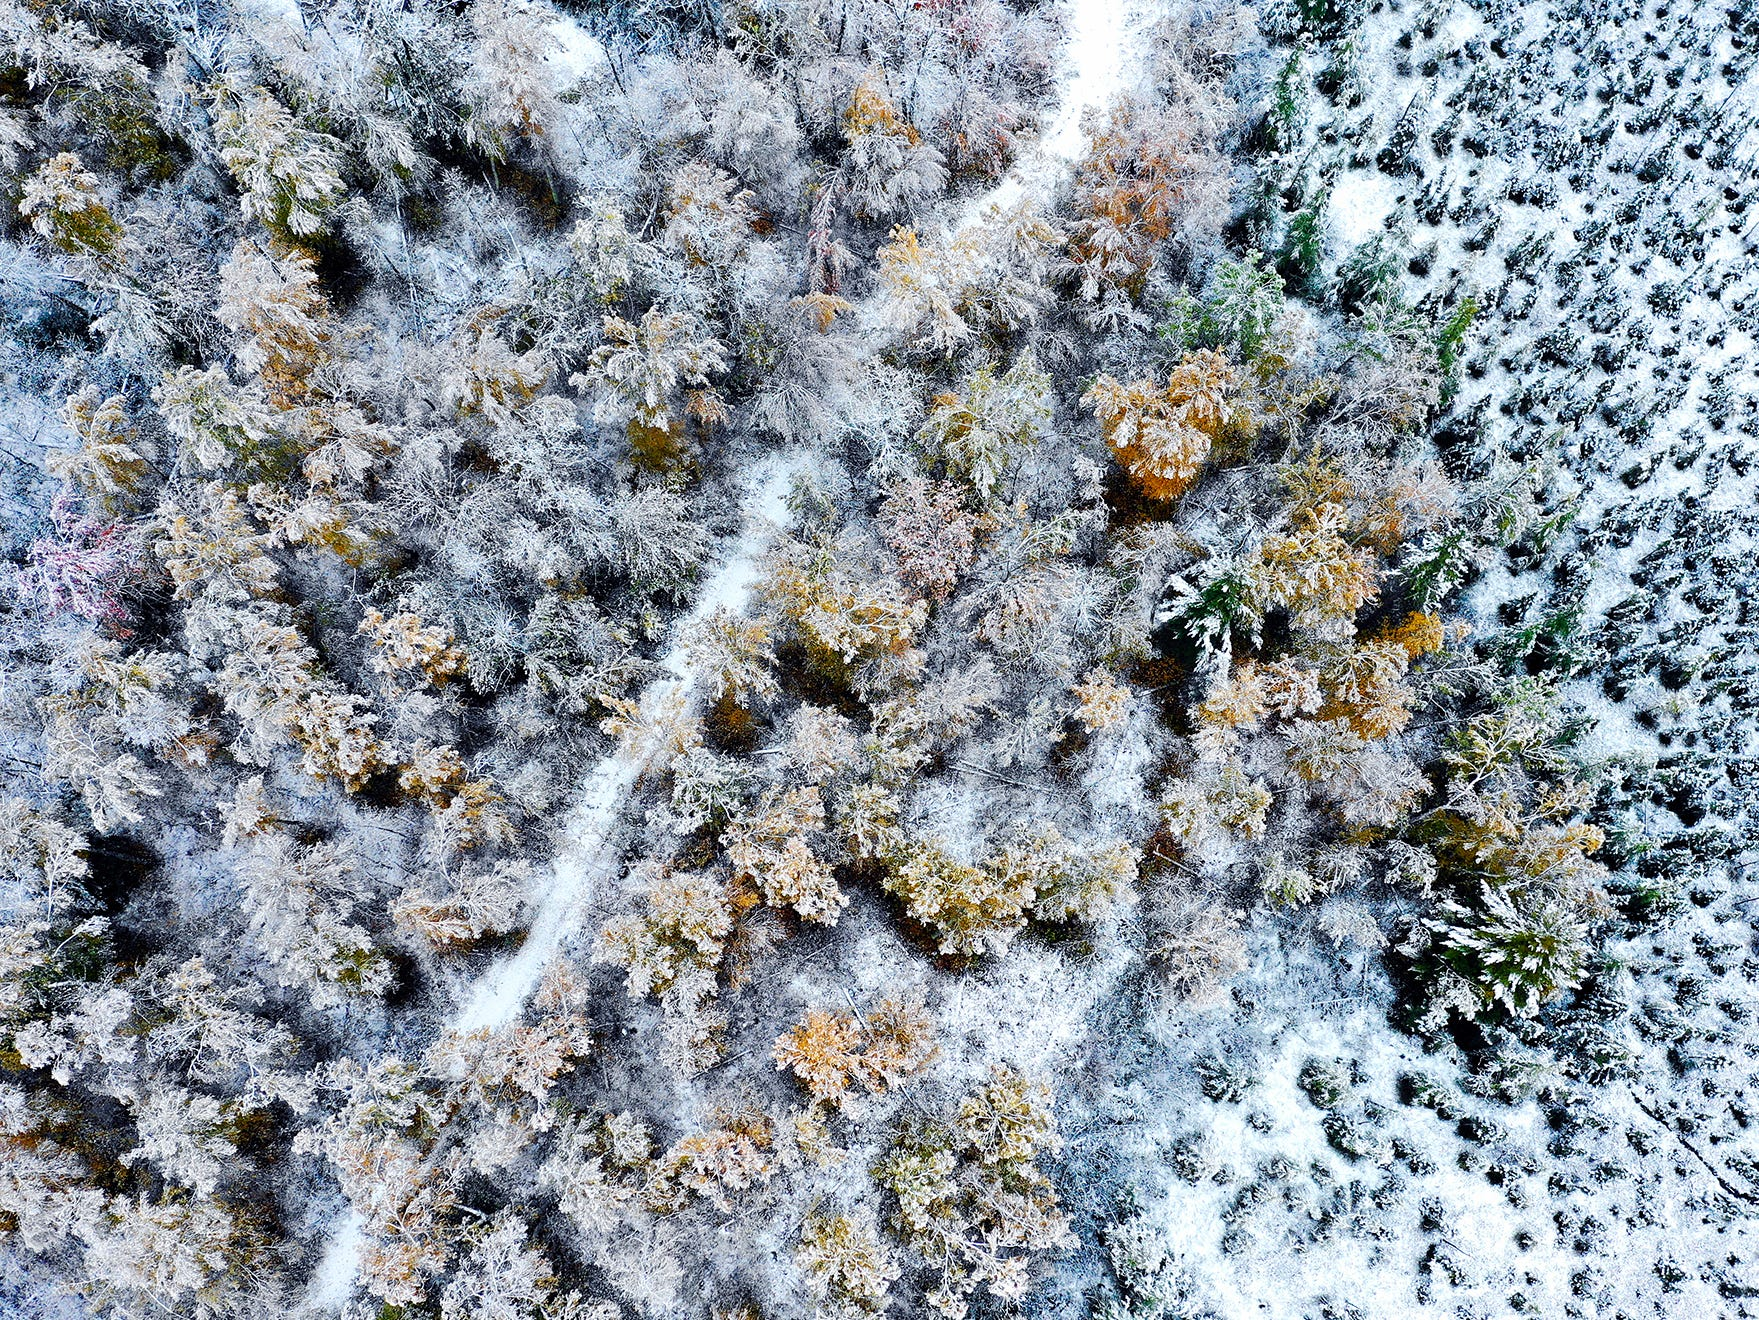 A grove of maple and aspen trees are coated with snow near Canyon, Minn., Friday, Oct. 5, 2018, after about two inches of wet snow fell overnight, coating the trees and mixing with fall colors.